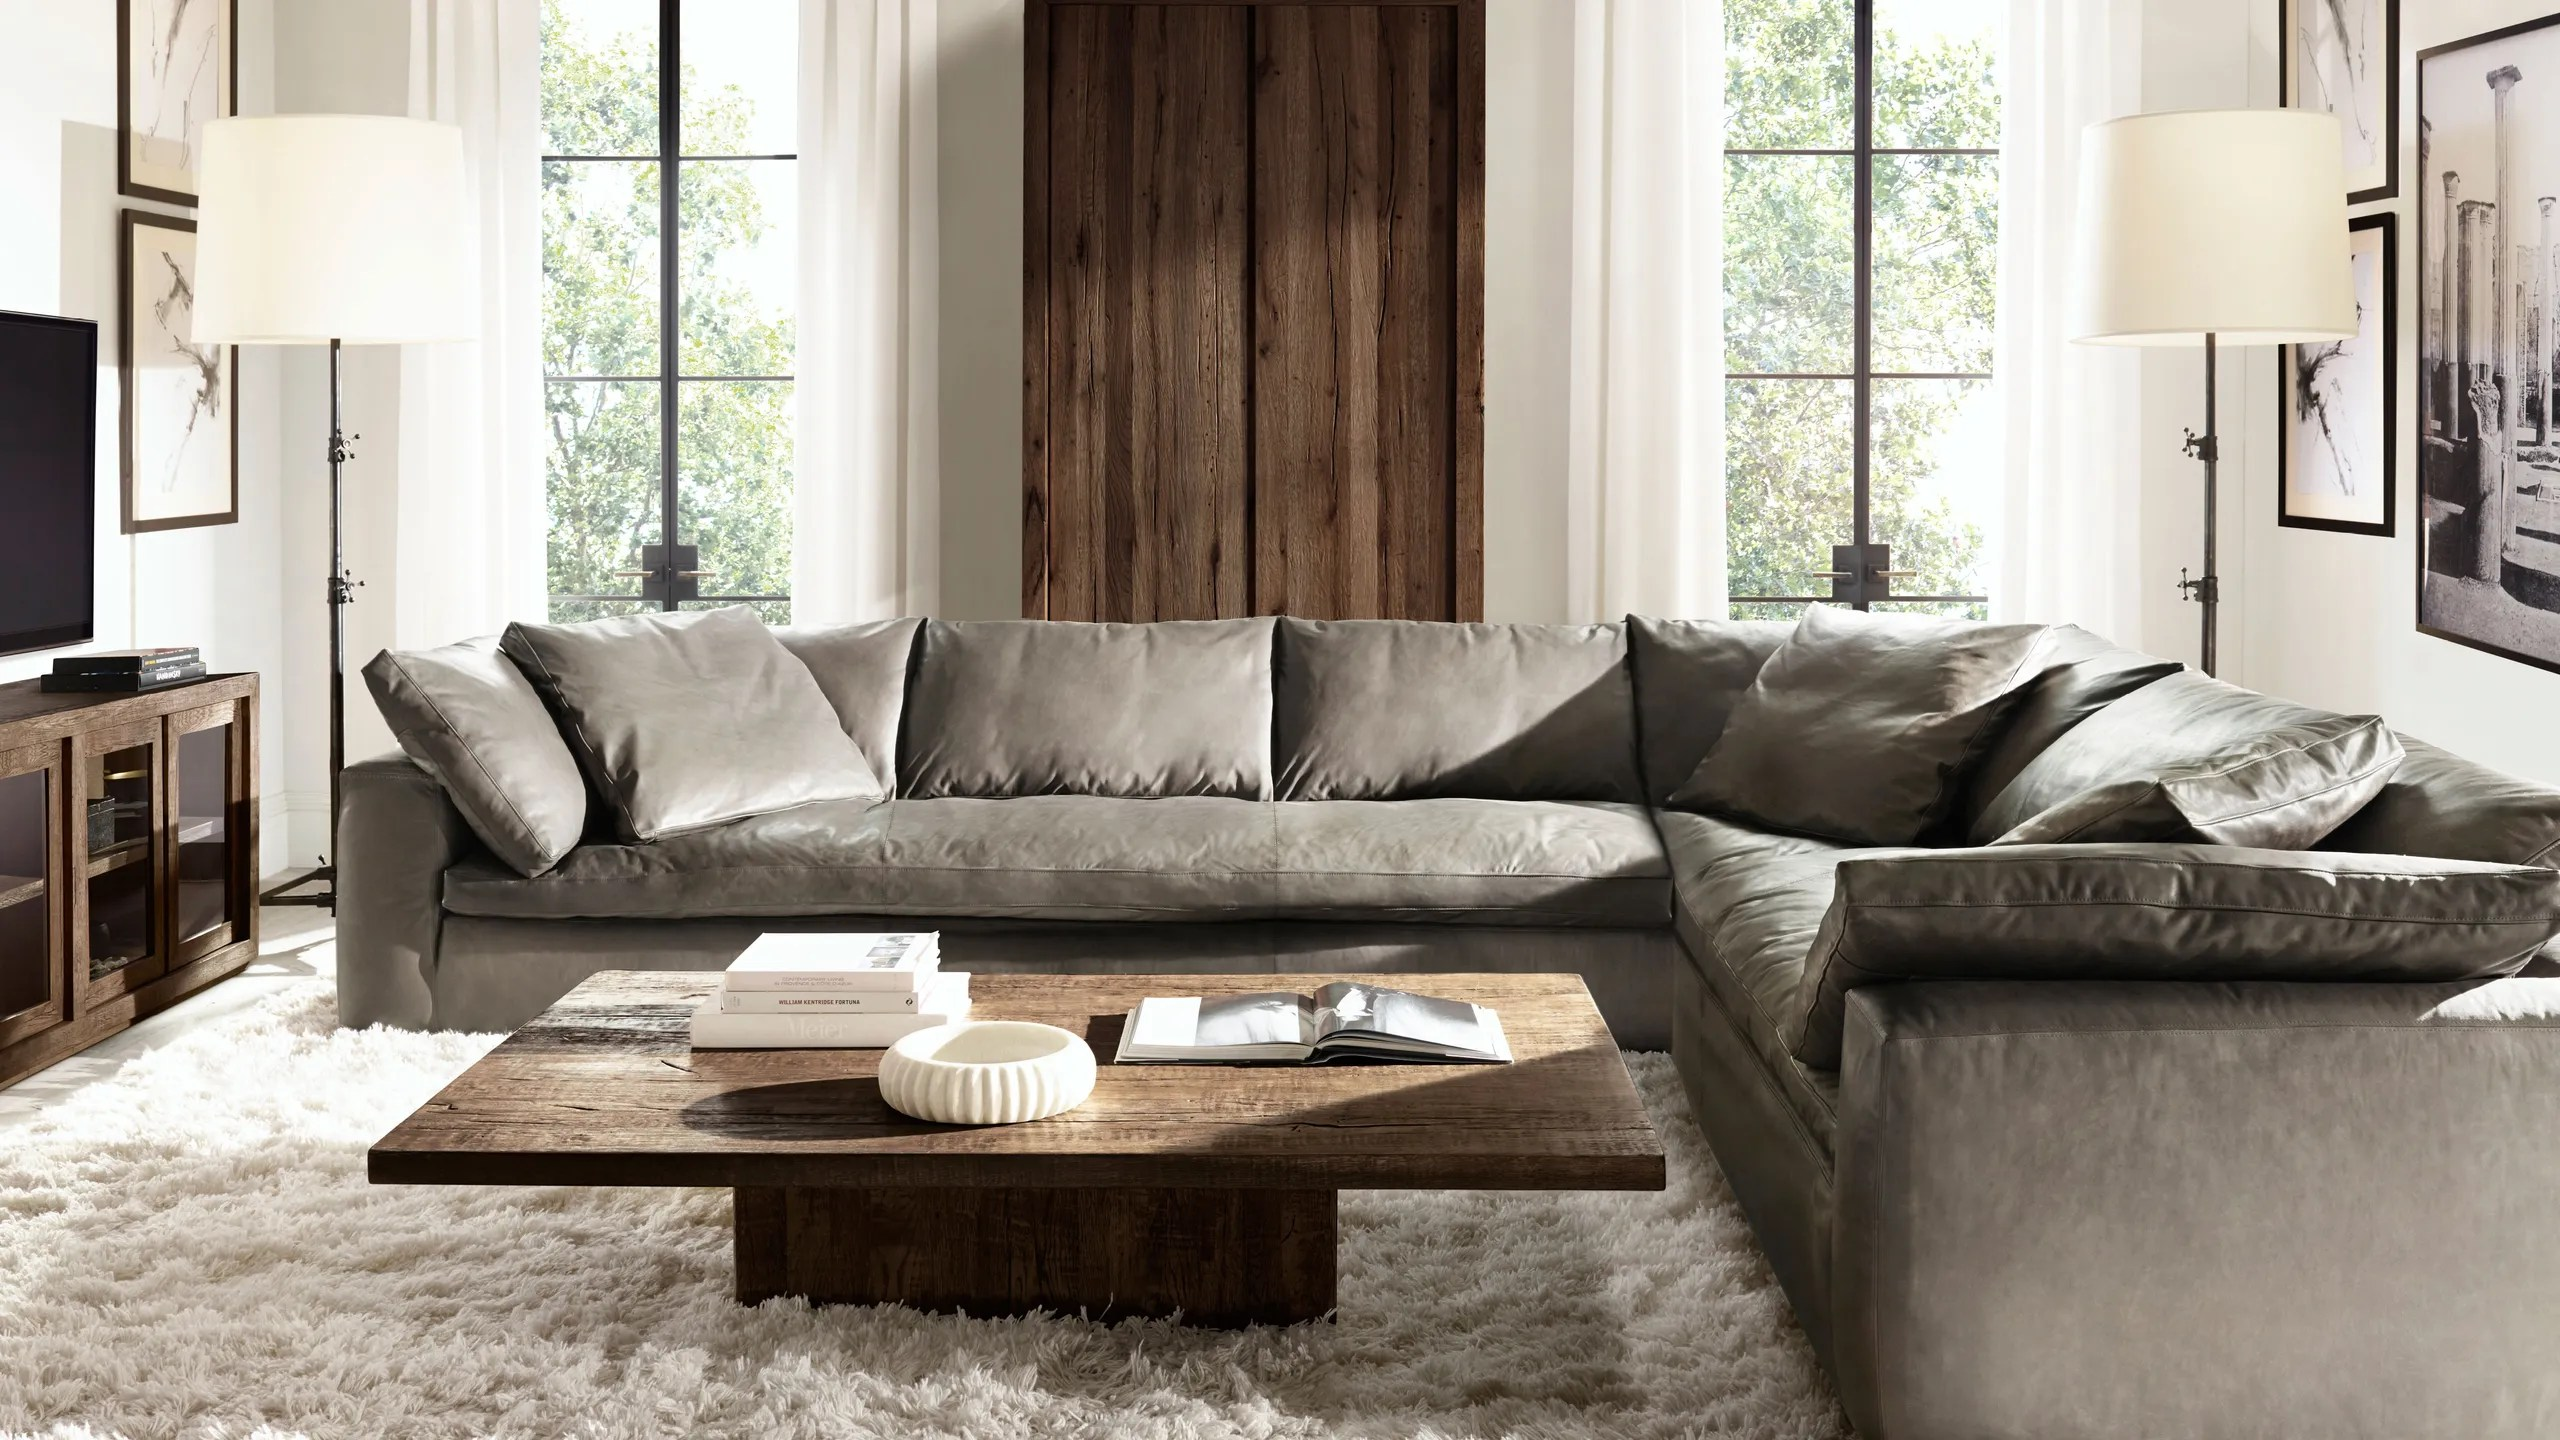 How To Clean Leather Couches Chairs And Other Furniture Architectural Digest